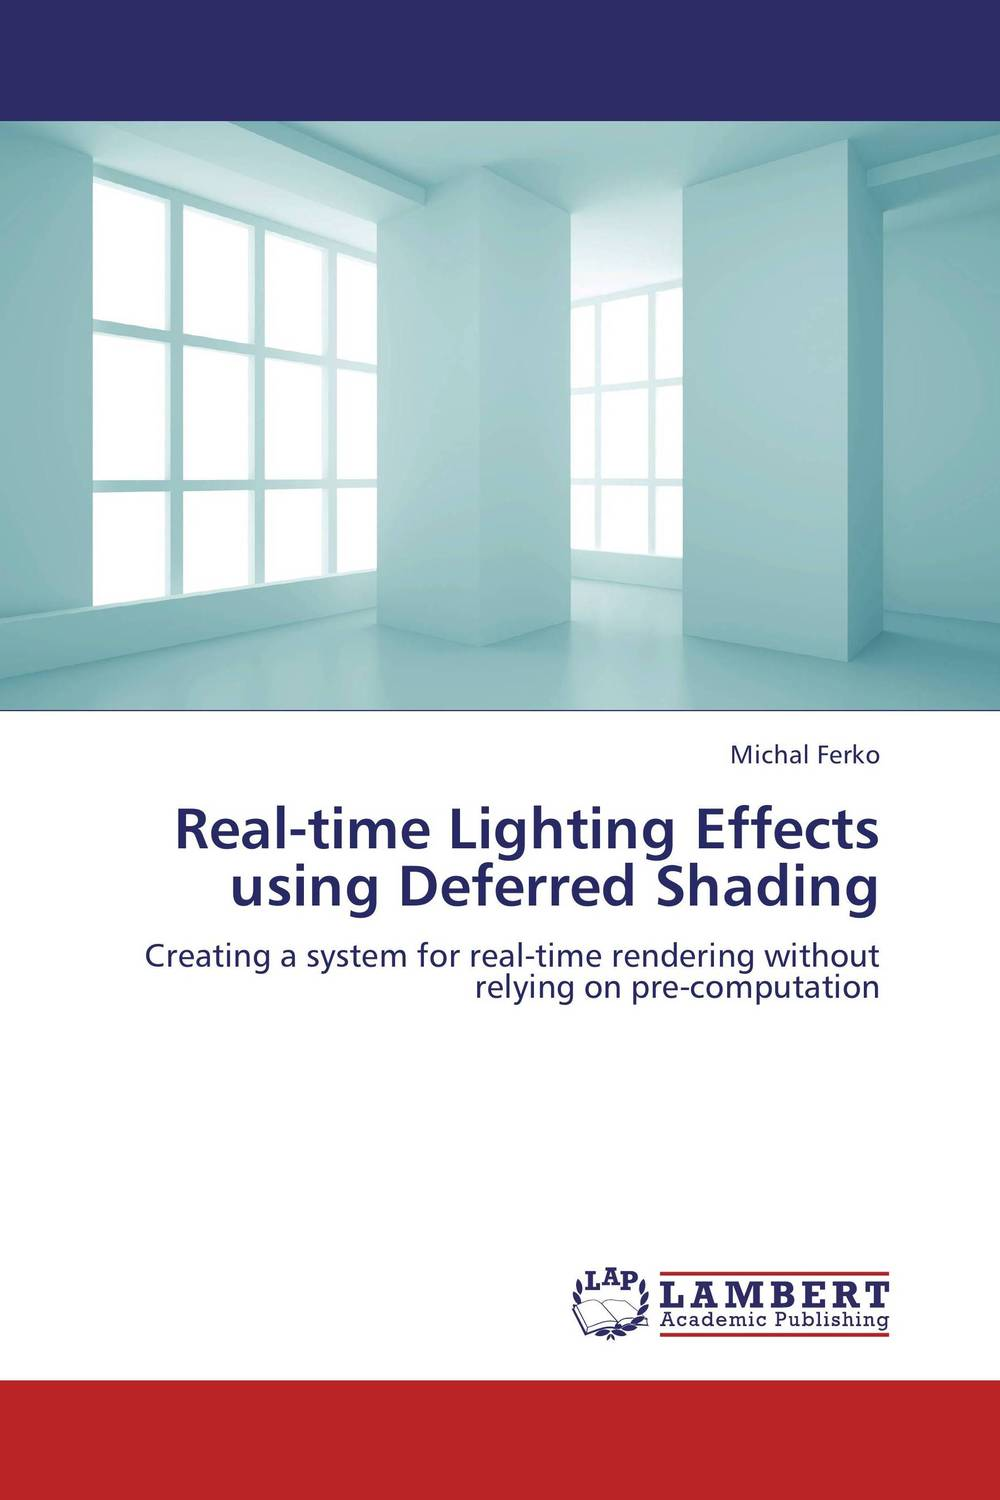 Real-time Lighting Effects using Deferred Shading lights and surfaces